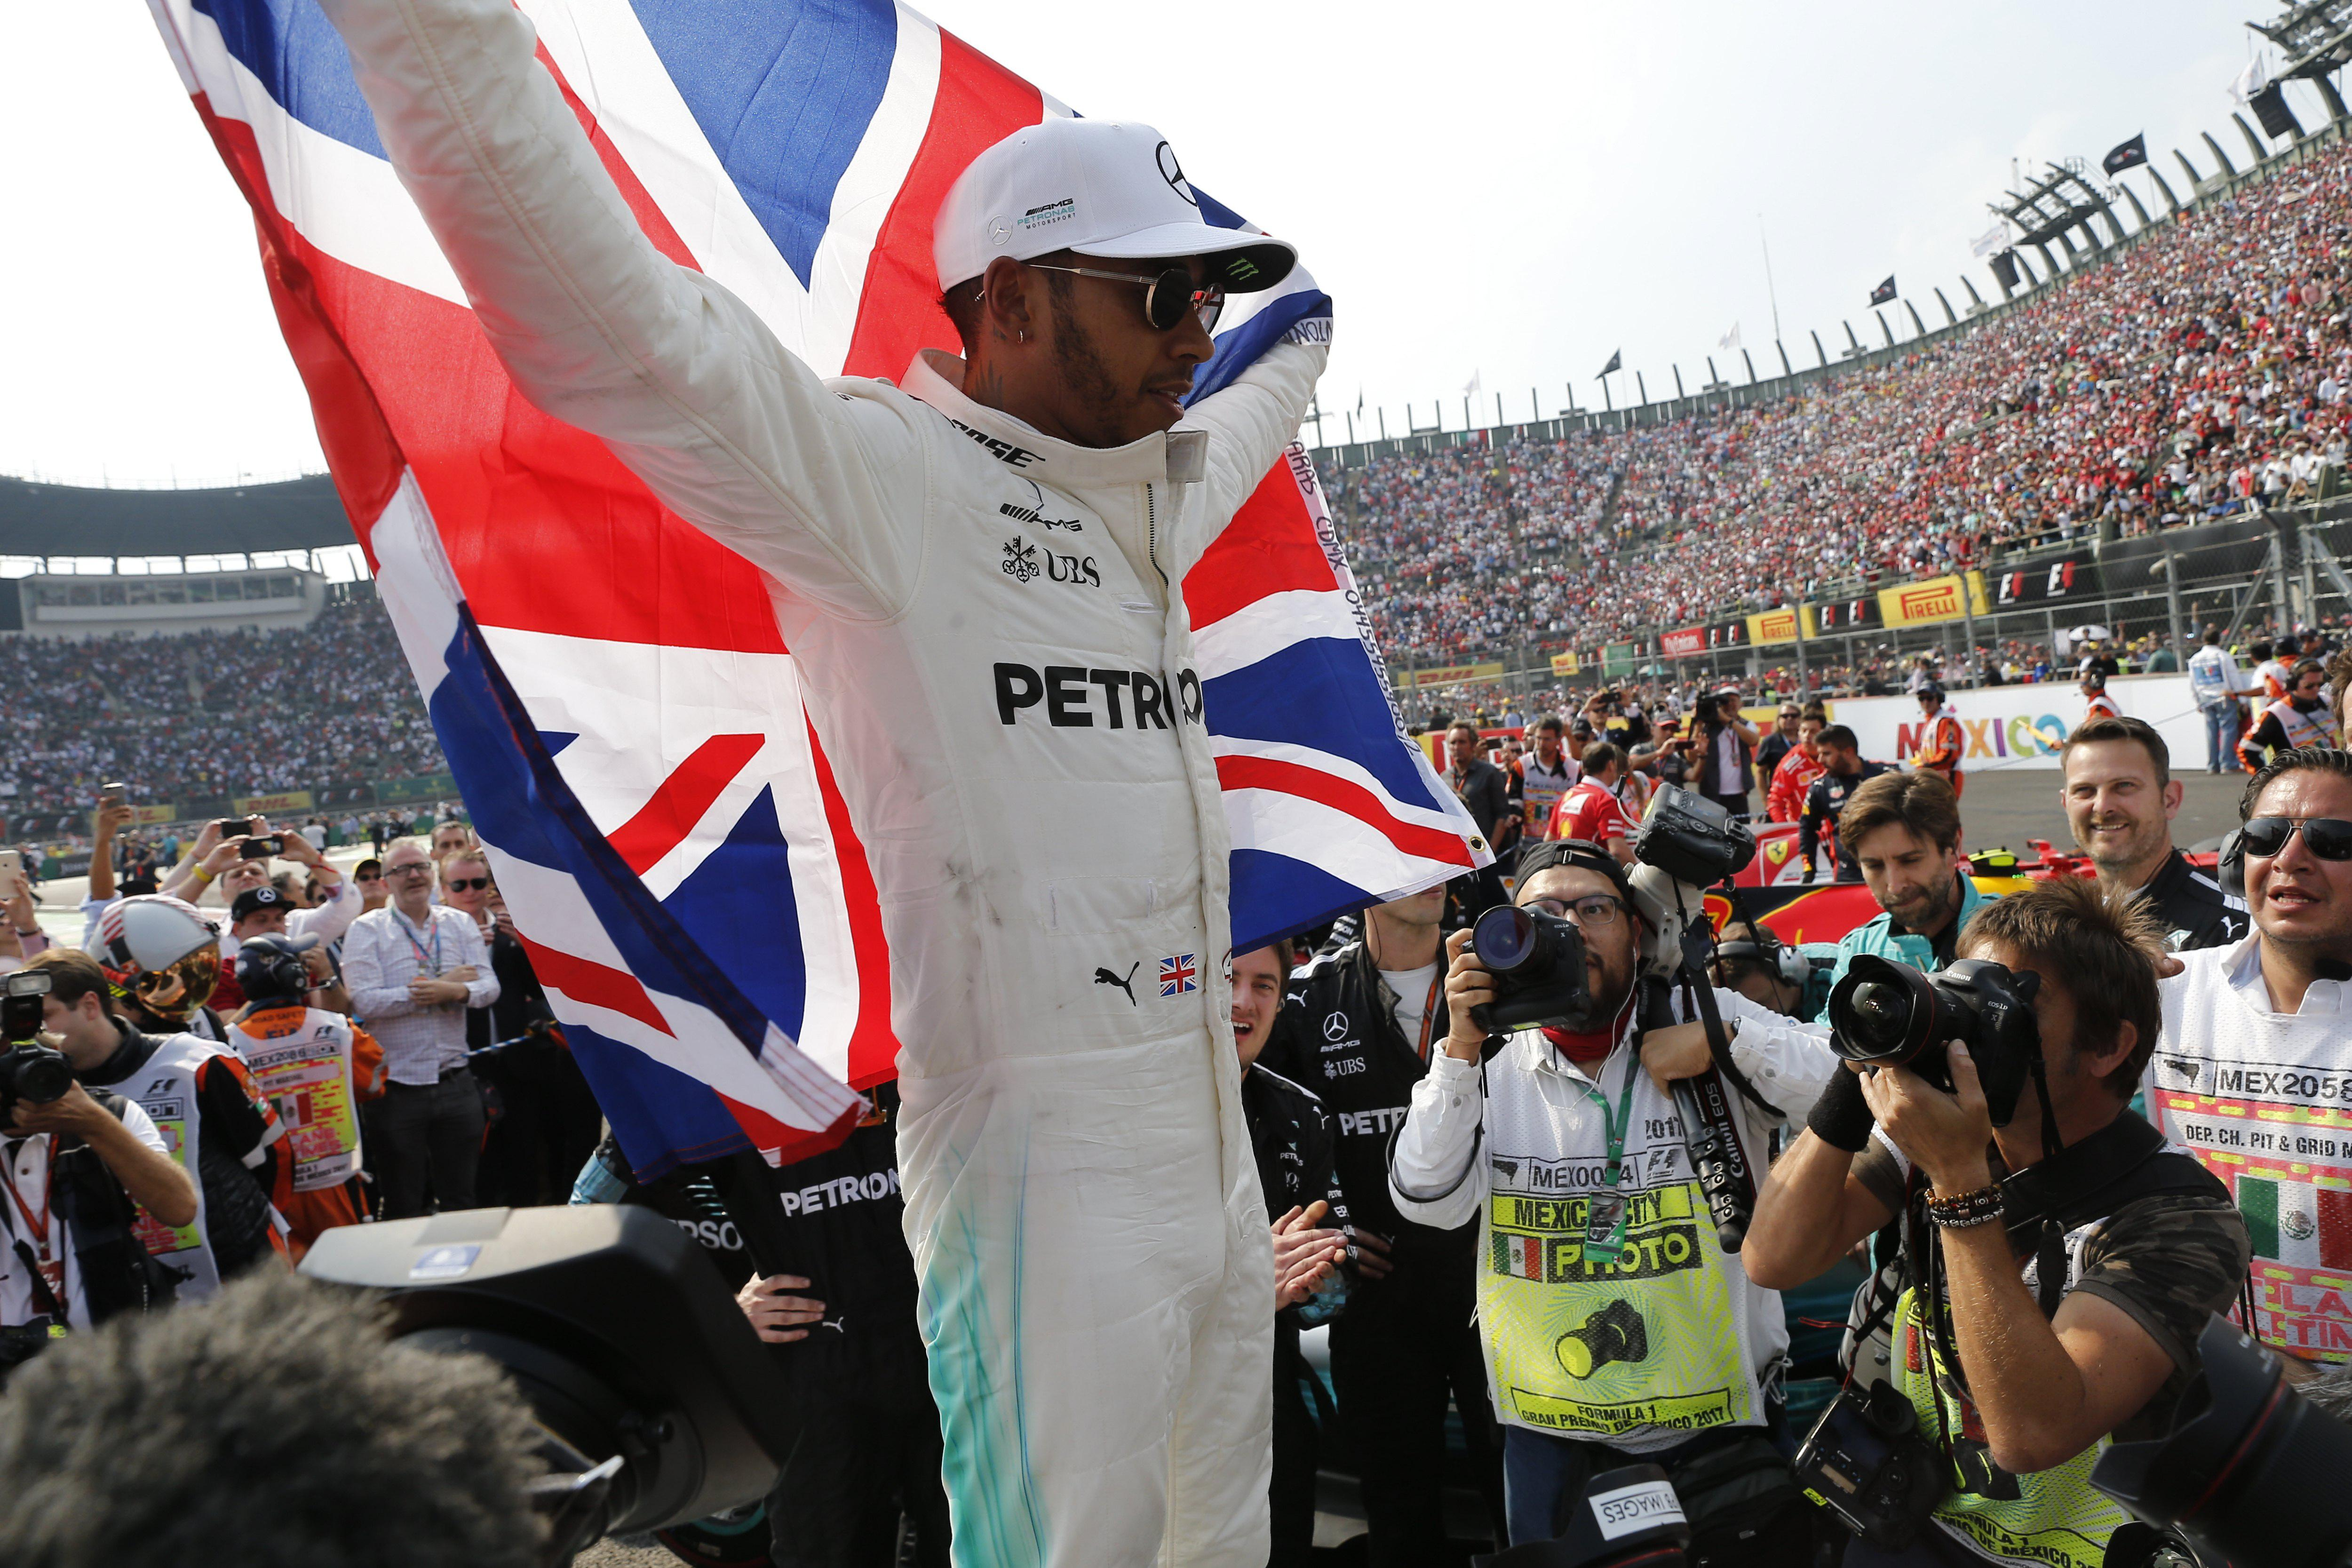 Lewis Hamilton is the greatest British racing driver of all time